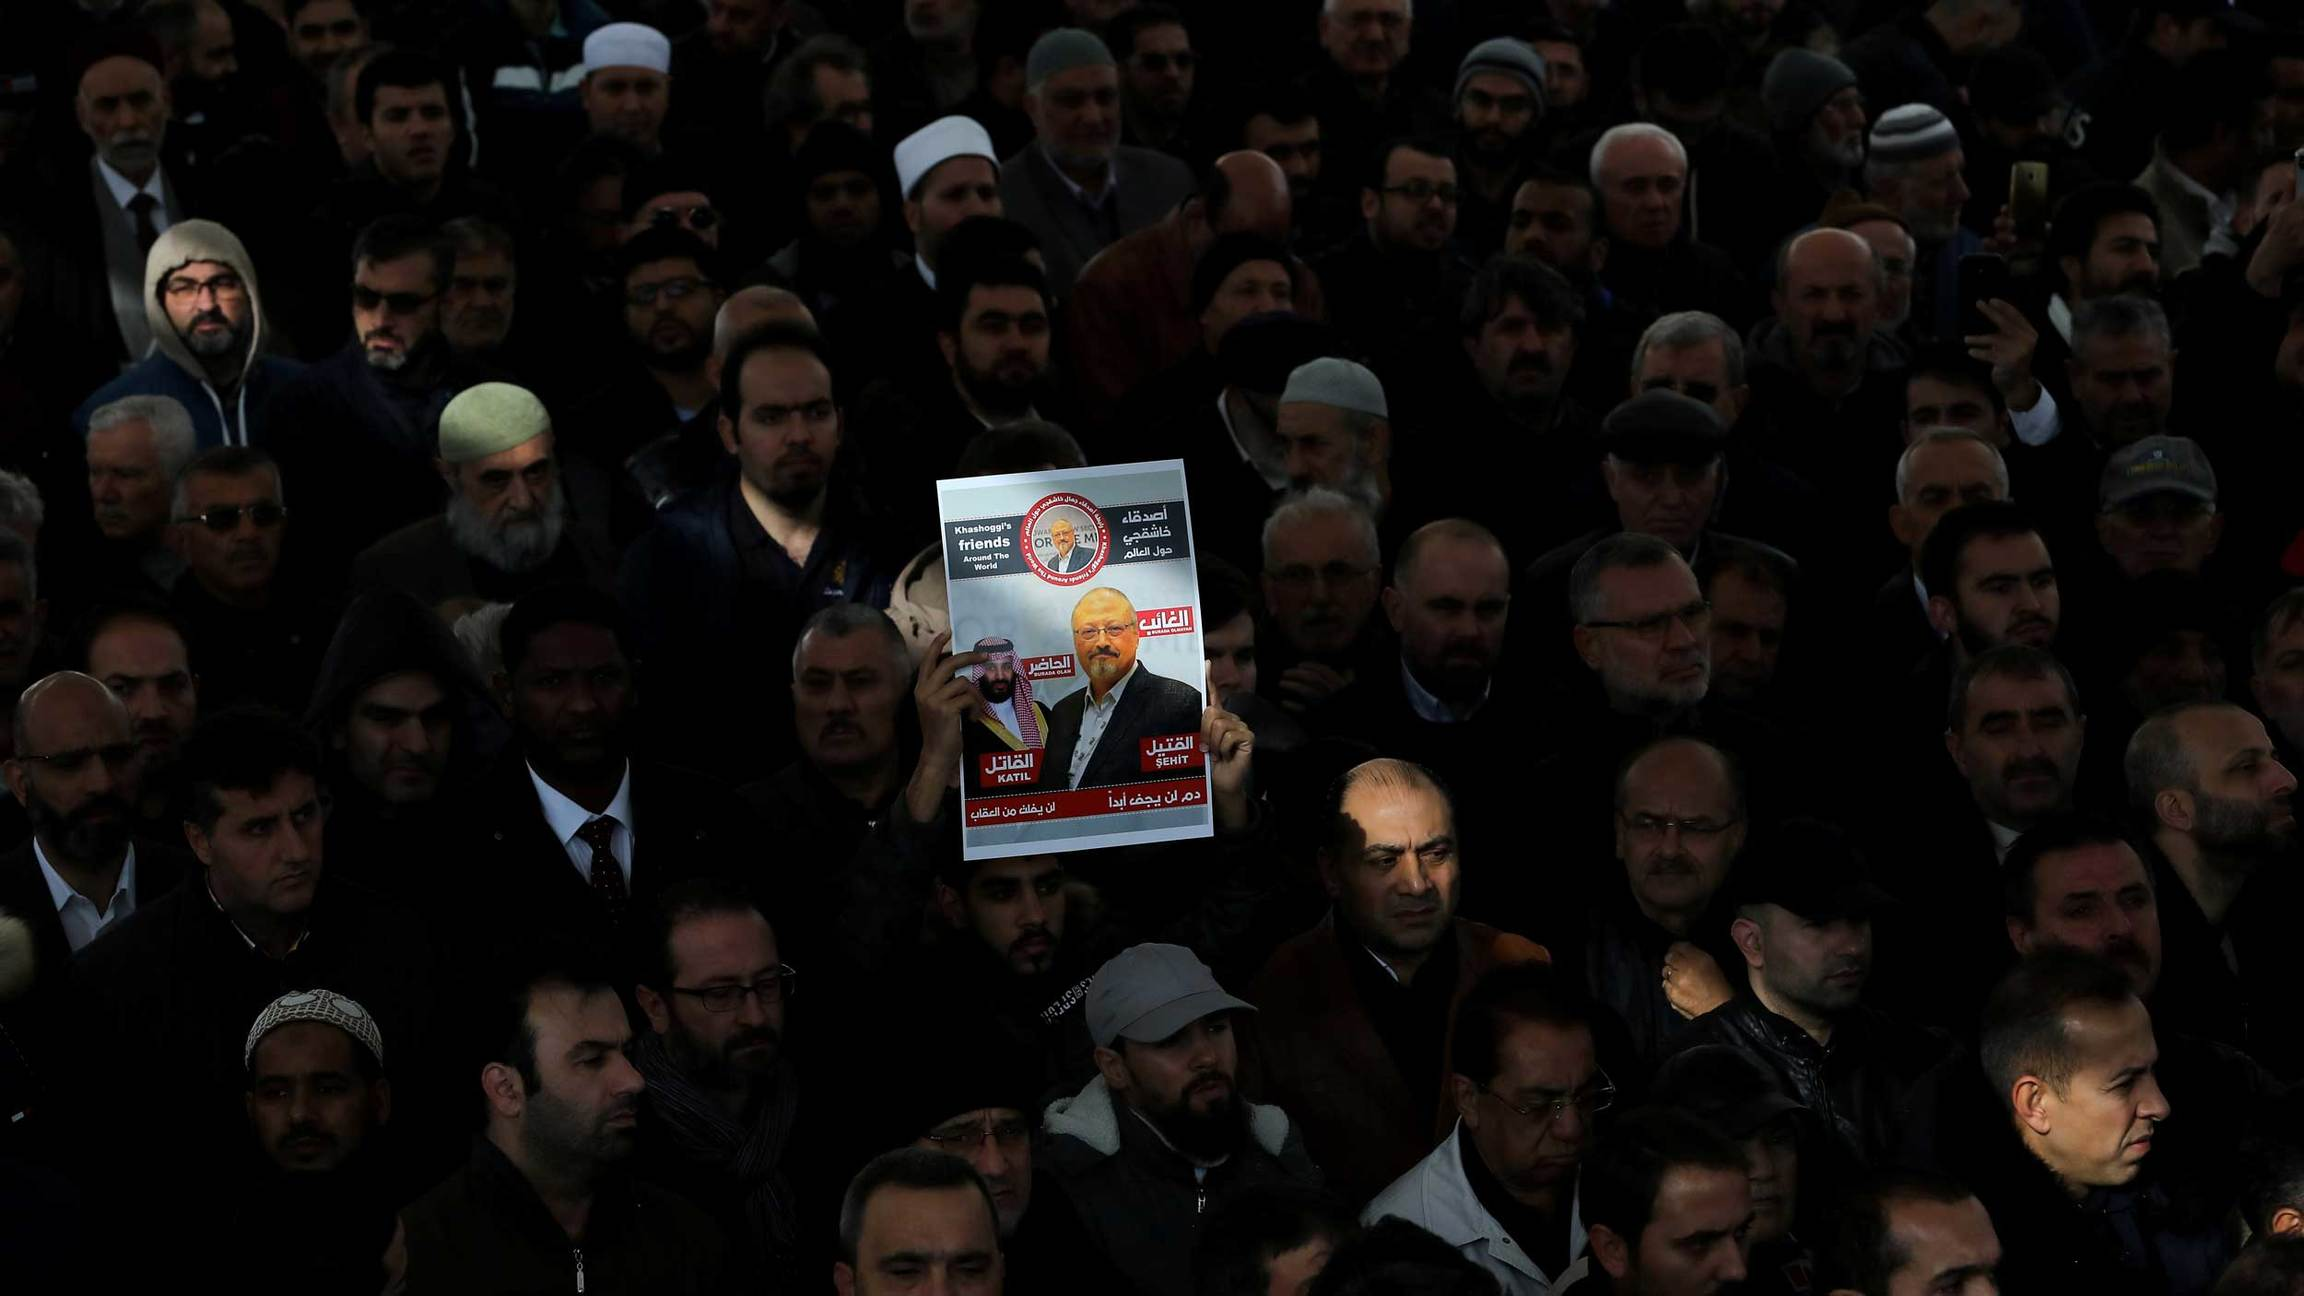 Dozens of people are praying and one person holds up a sign with Jamal Khashoggi's image on it